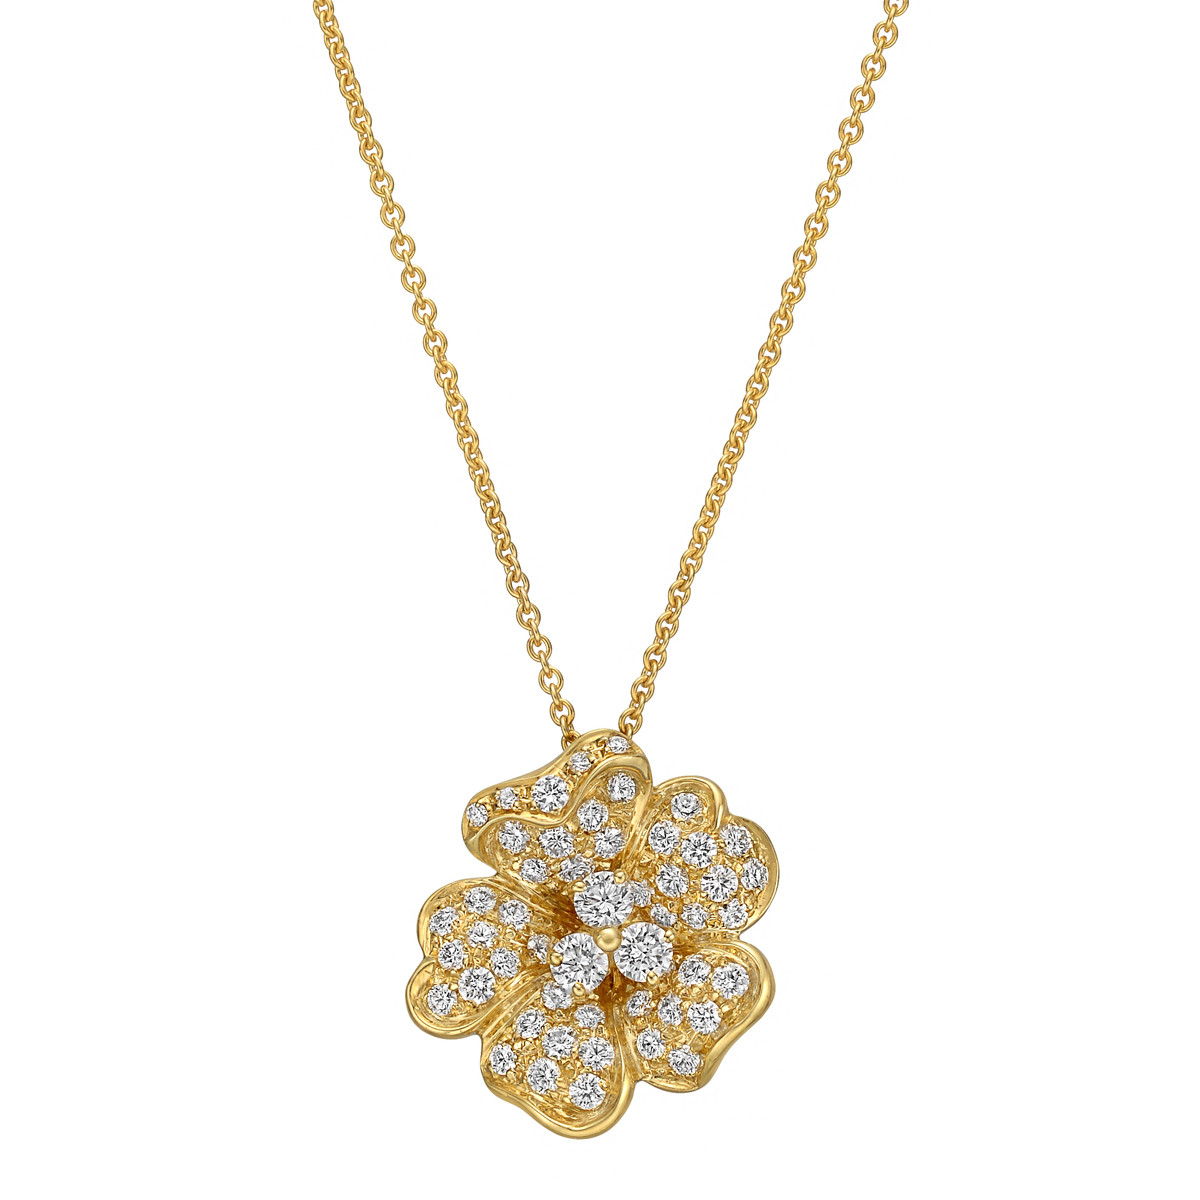 18k Yellow Gold & Diamond Flower Pendant